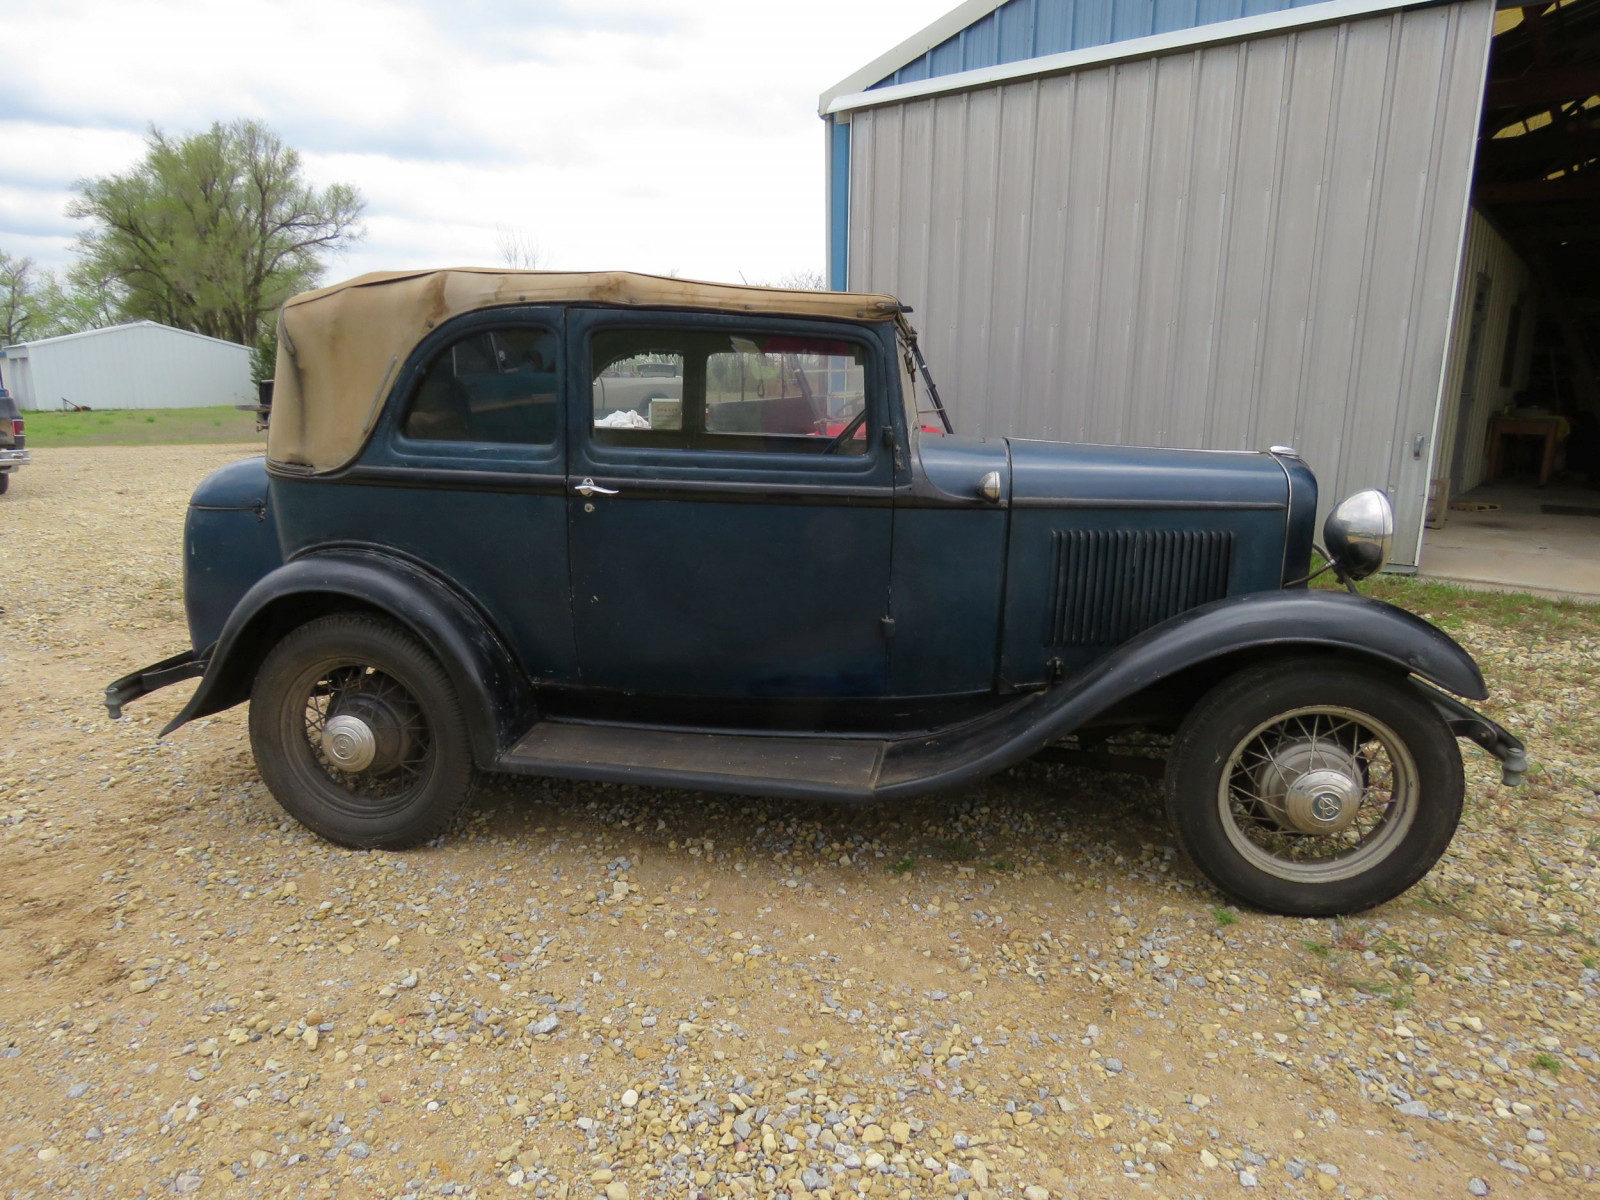 RARE 1932 FORD B400 2DR CONVERTIBLE V8 SEDAN - Image 4